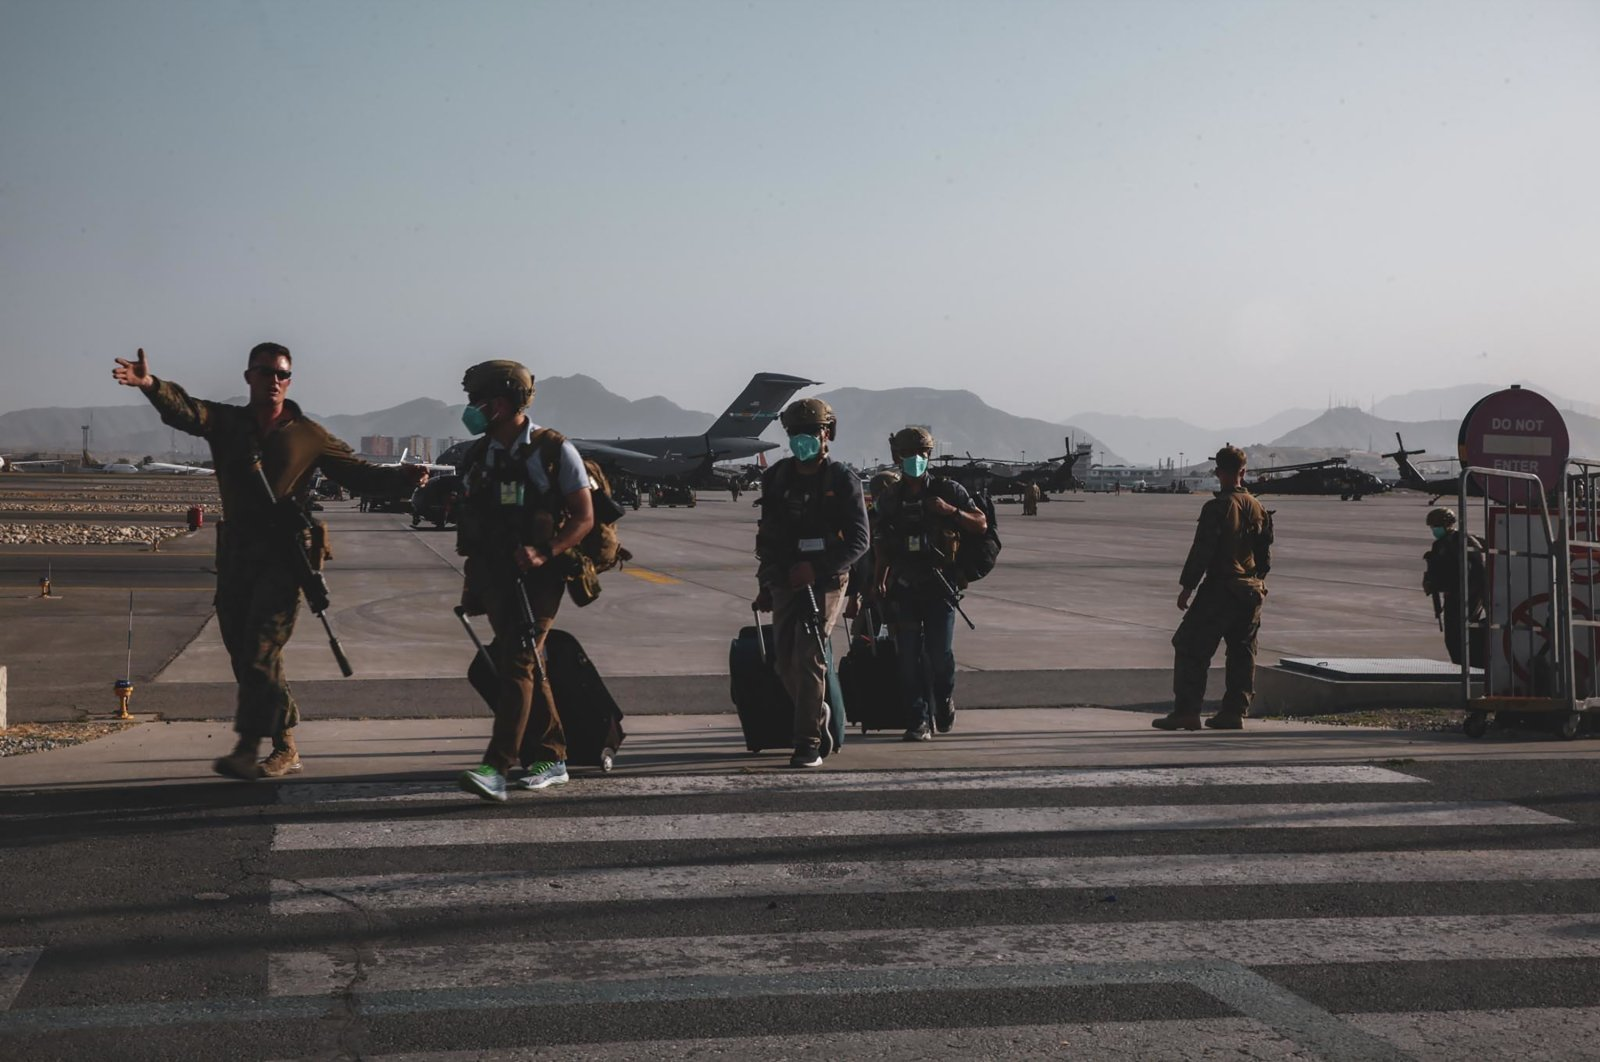 A U.S. Marine assigned to the 24th Marine Expeditionary Unit escorts U.S. State Department personnel to be processed for evacuation at Hamid Karzai International Airport, Kabul, Afghanistan, Aug. 15, 2021. (U.S. Marine Corps via AP)